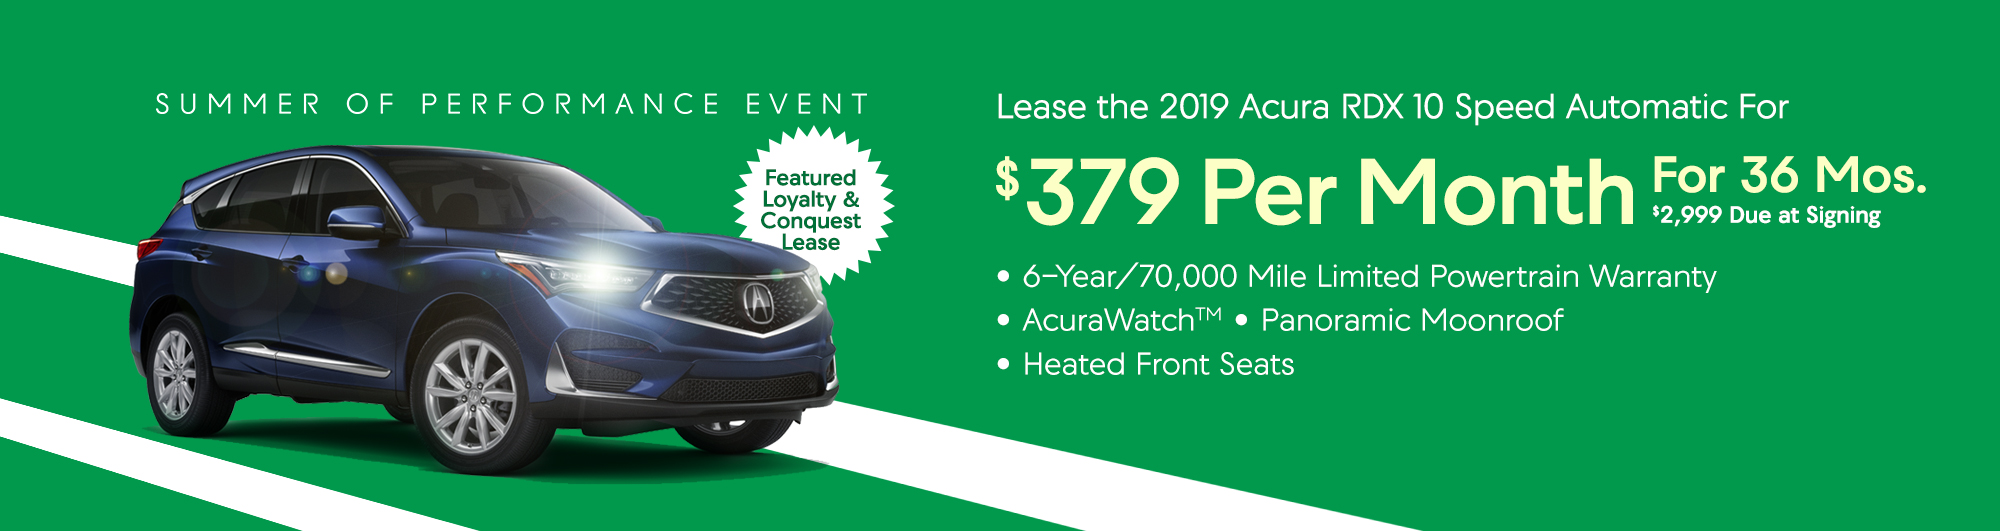 Lease the 2019 Acura RDX 10 Speed Automatic for $379 per month, $2,999 Due at Signing